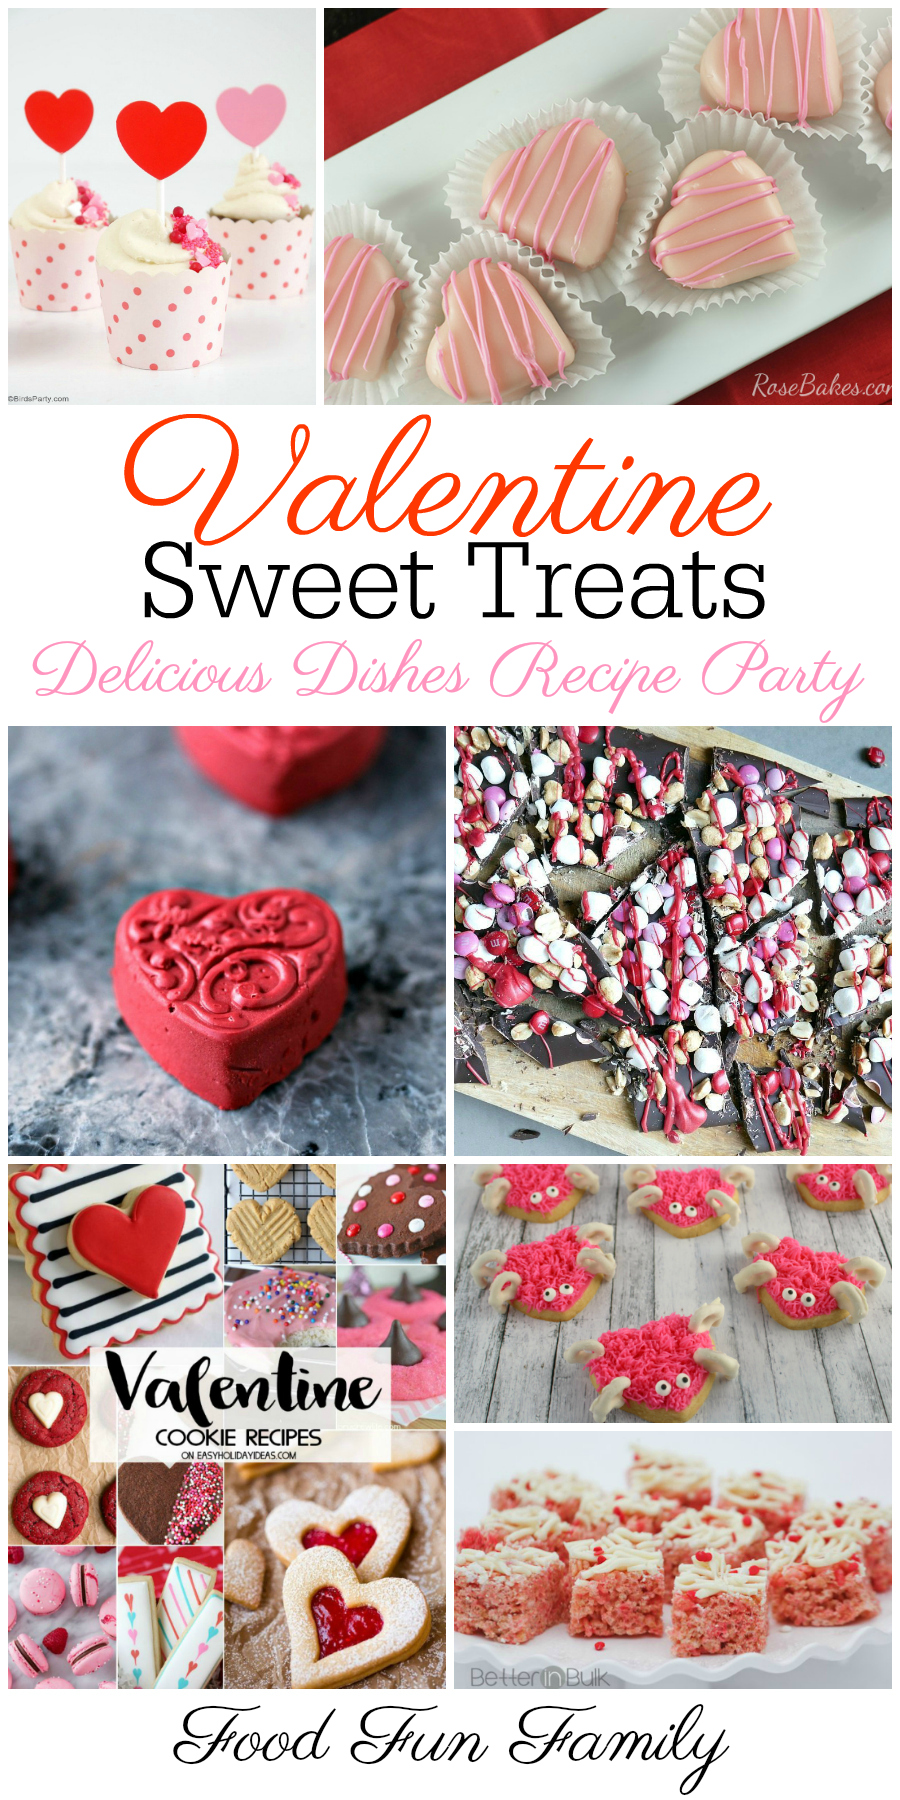 Valentine's Day sweet treats - a Delicious Dishes Recipe Party collection